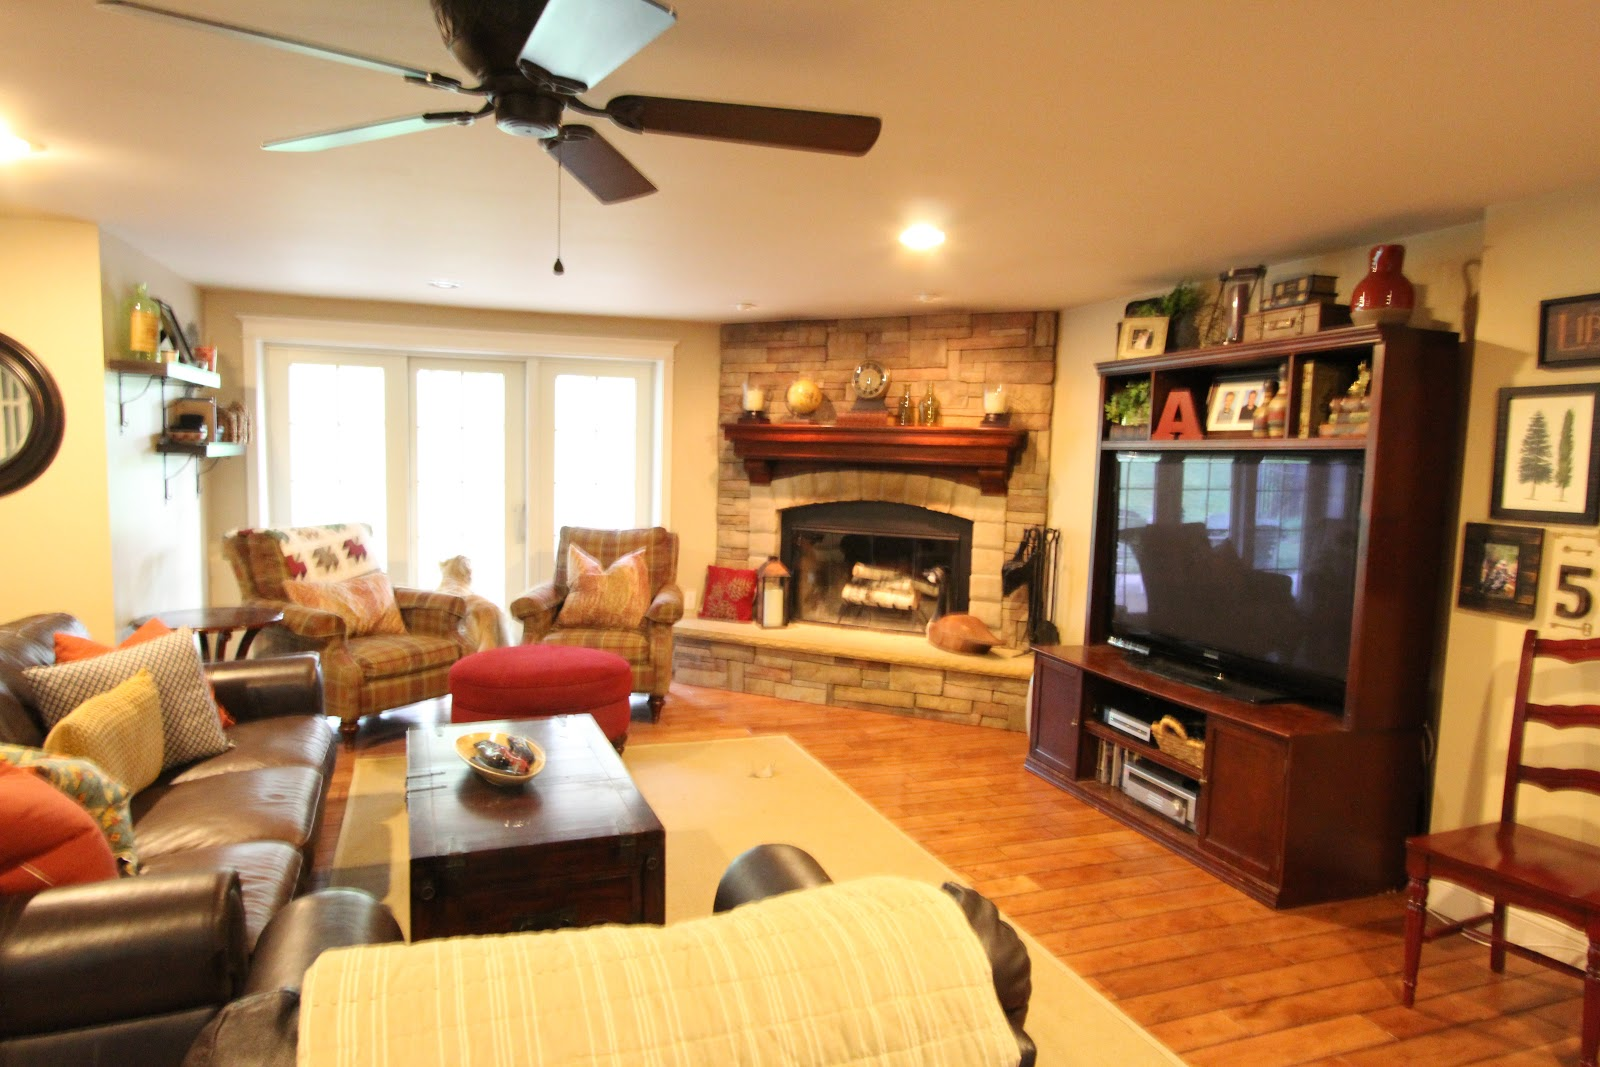 Our Family Friendly Family Room | Golden Boys and Me - Corner Fireplace Family Room Photos